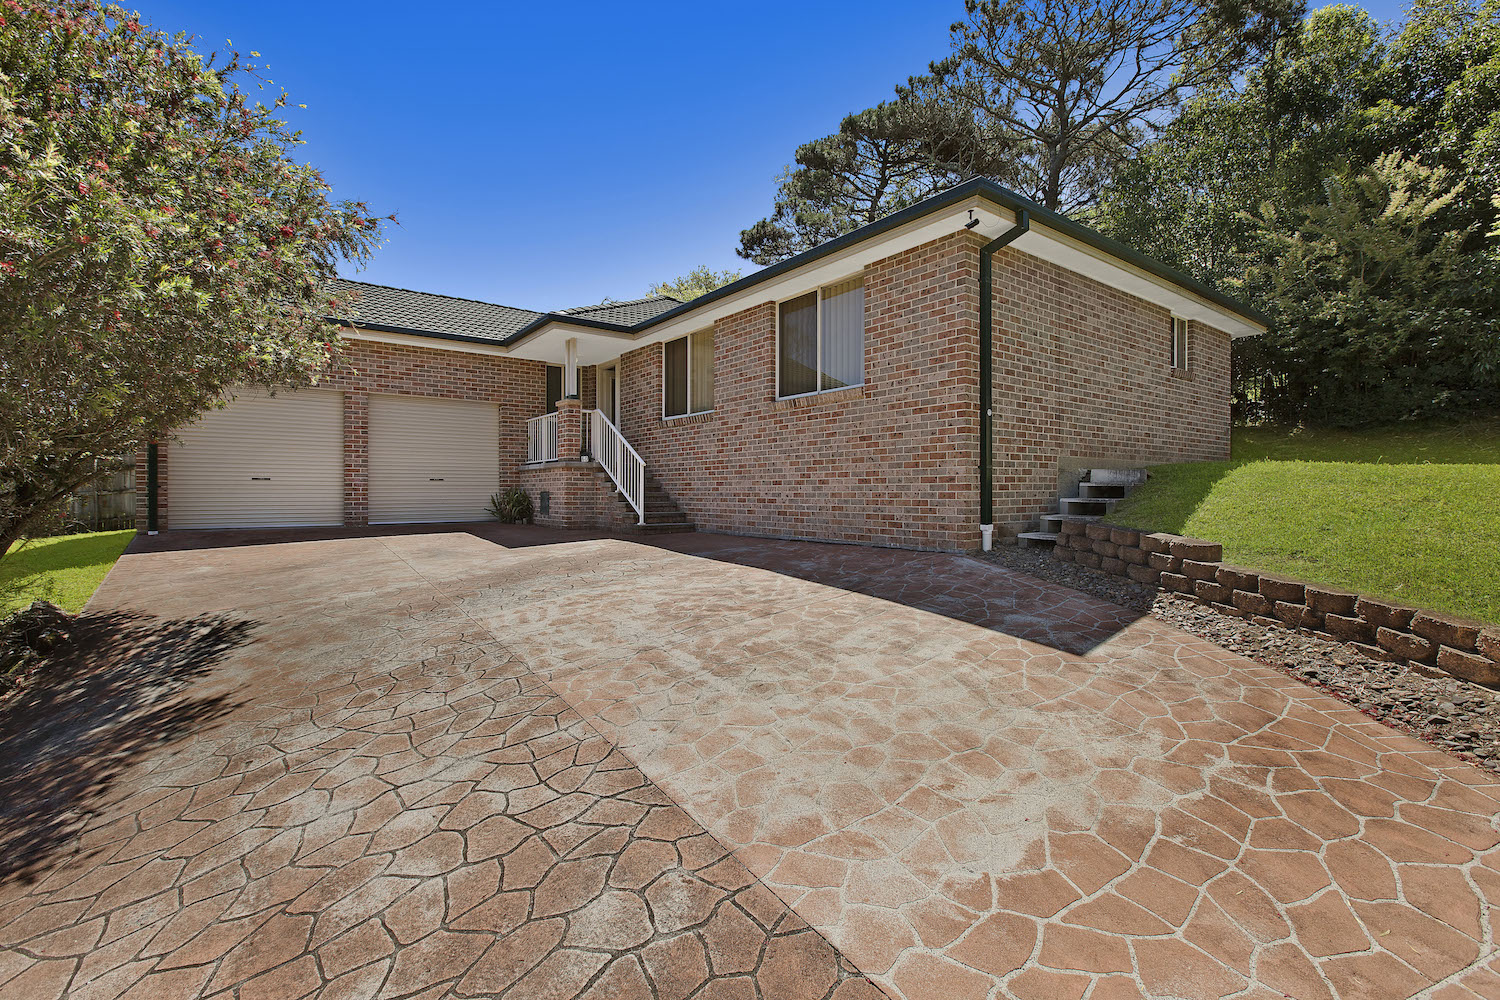 Nsw Renting A St Property